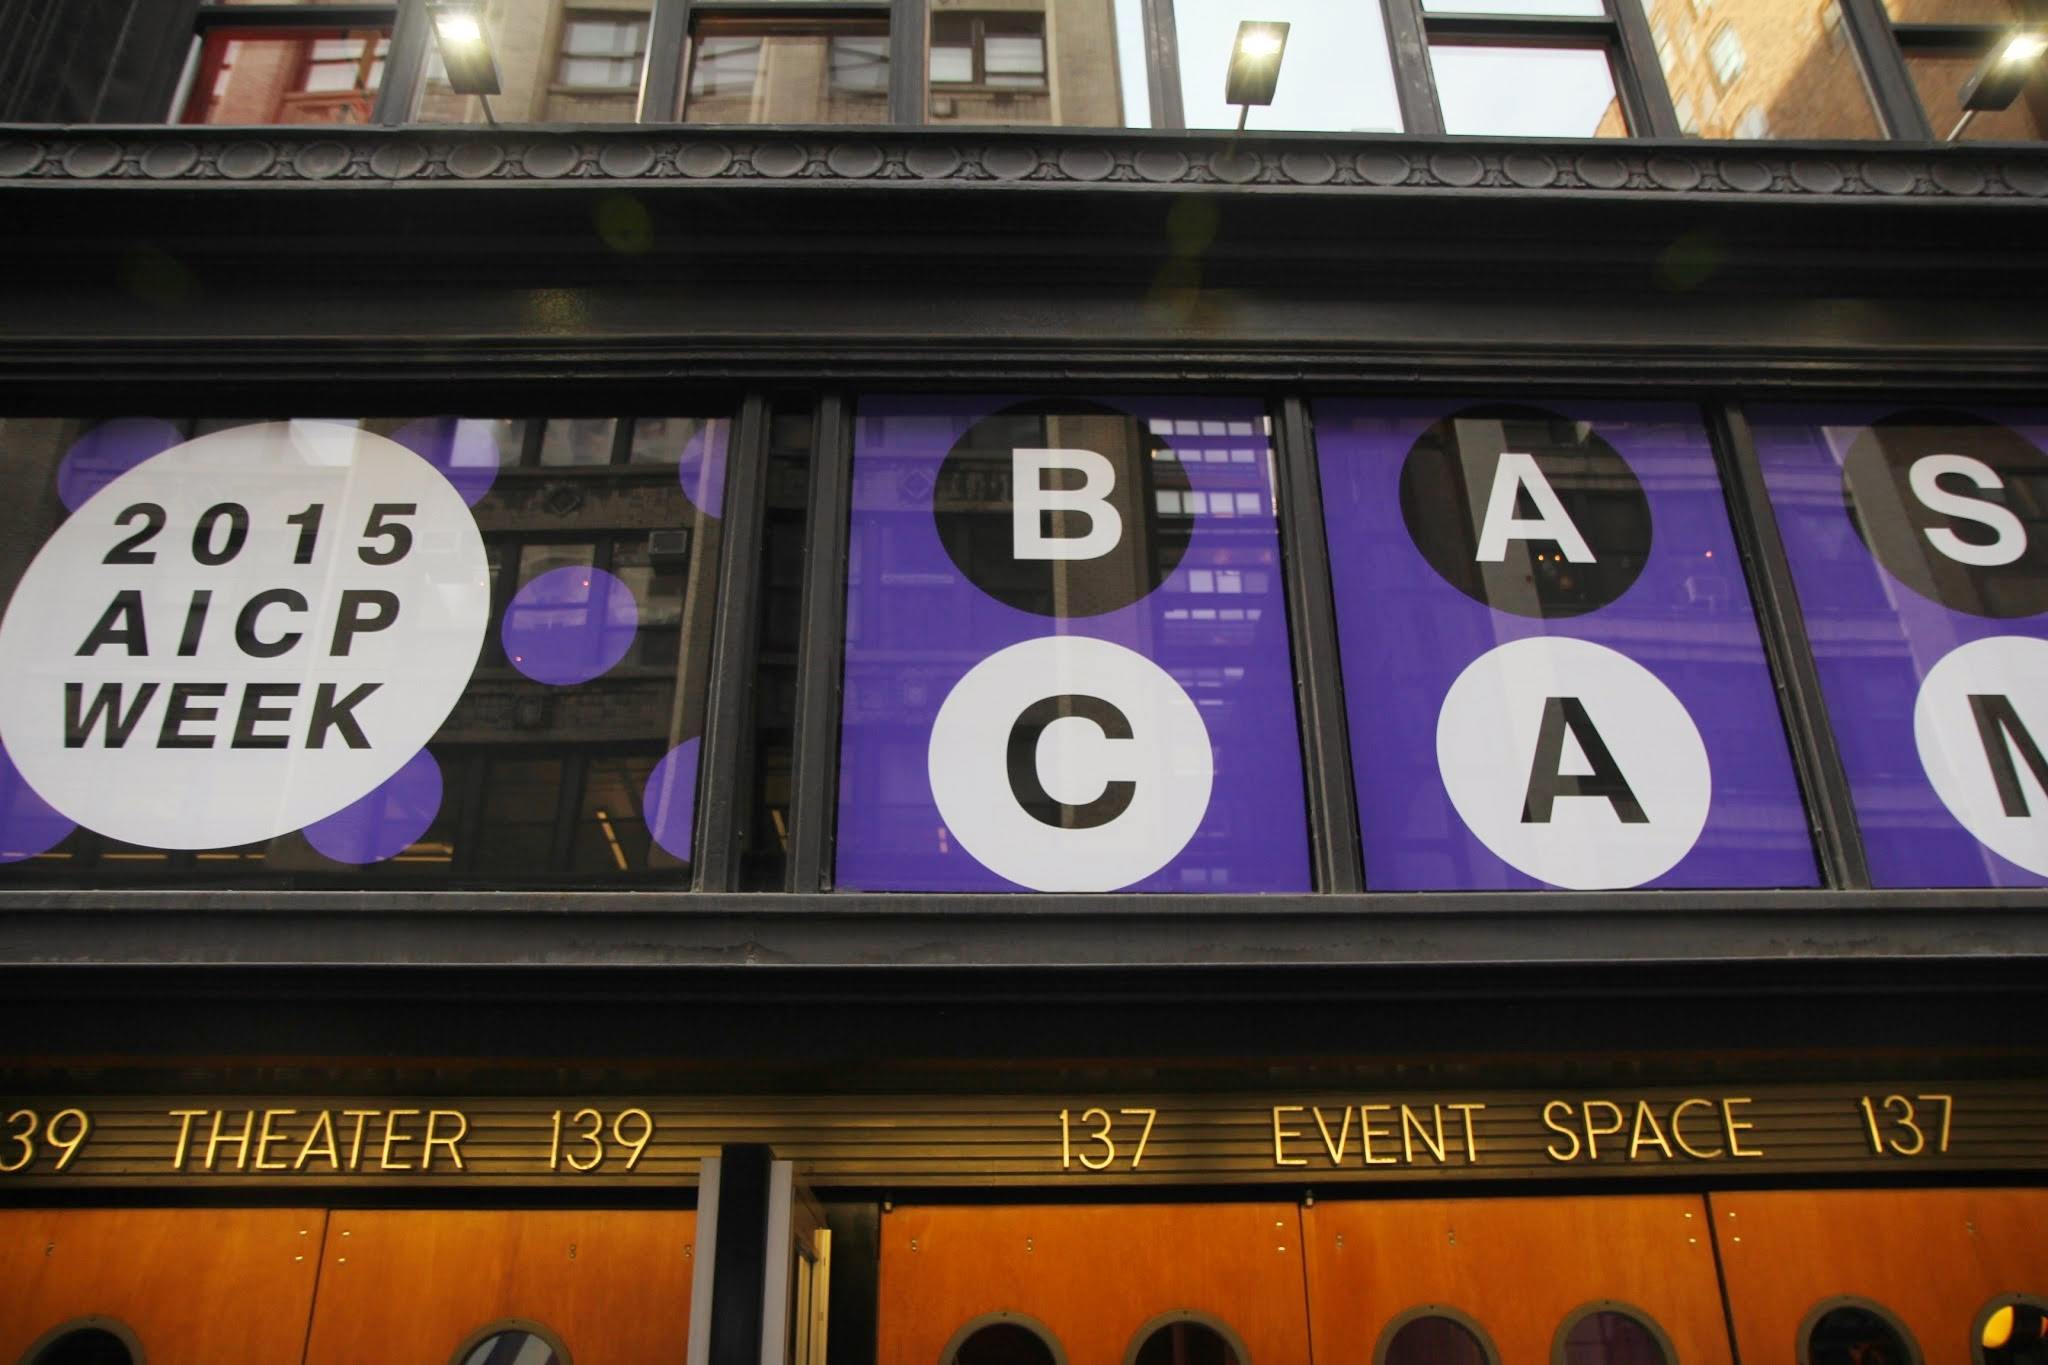 AICP Week's 2015 Base Camp at HELEN MILLS Event Space and Theater